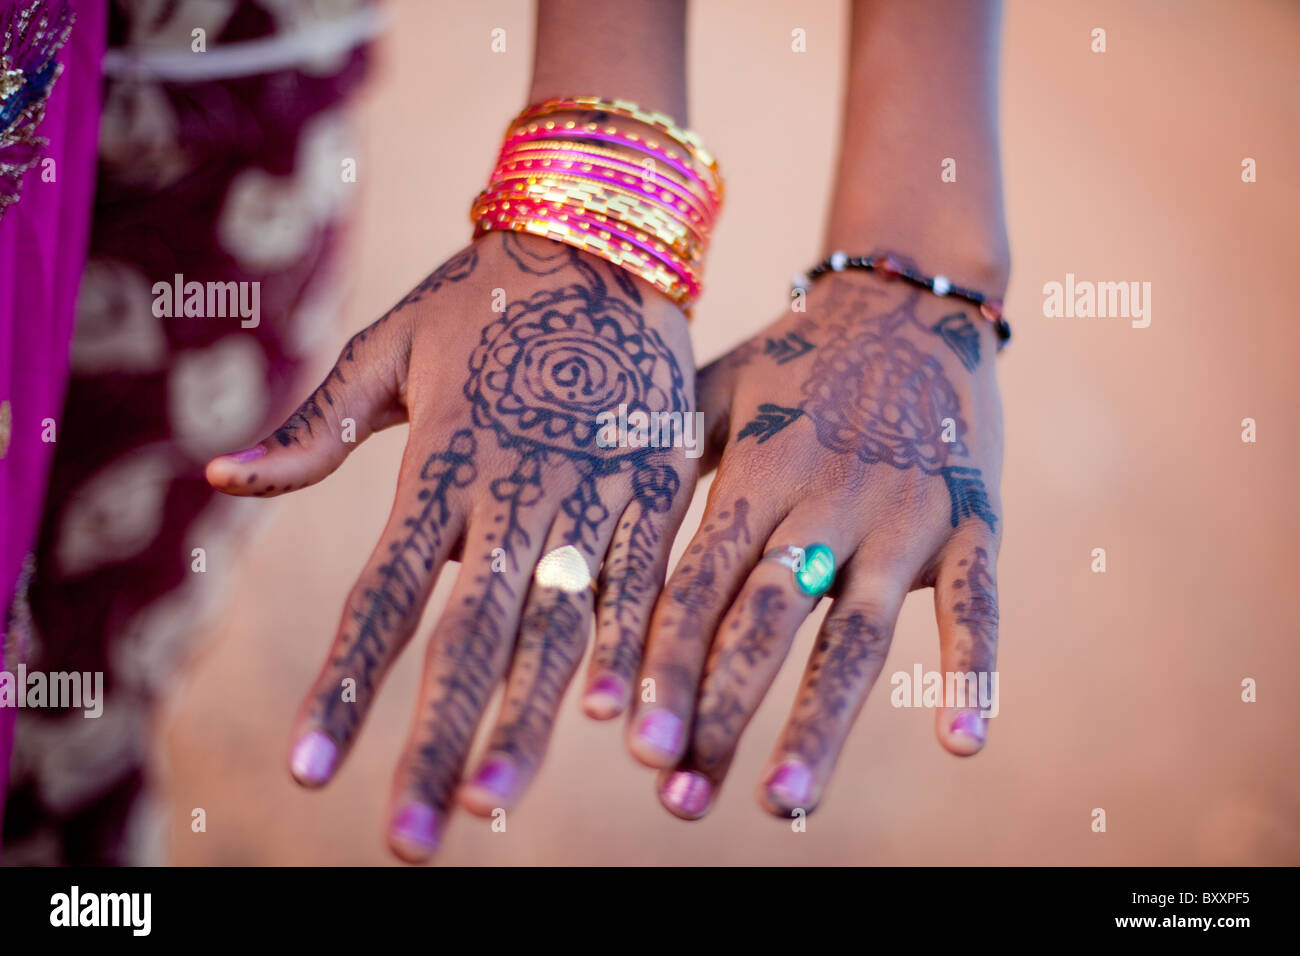 In the days leading up to Tabaski, young women in Djibo, Burkina Faso have their hands decorated with henna. - Stock Image